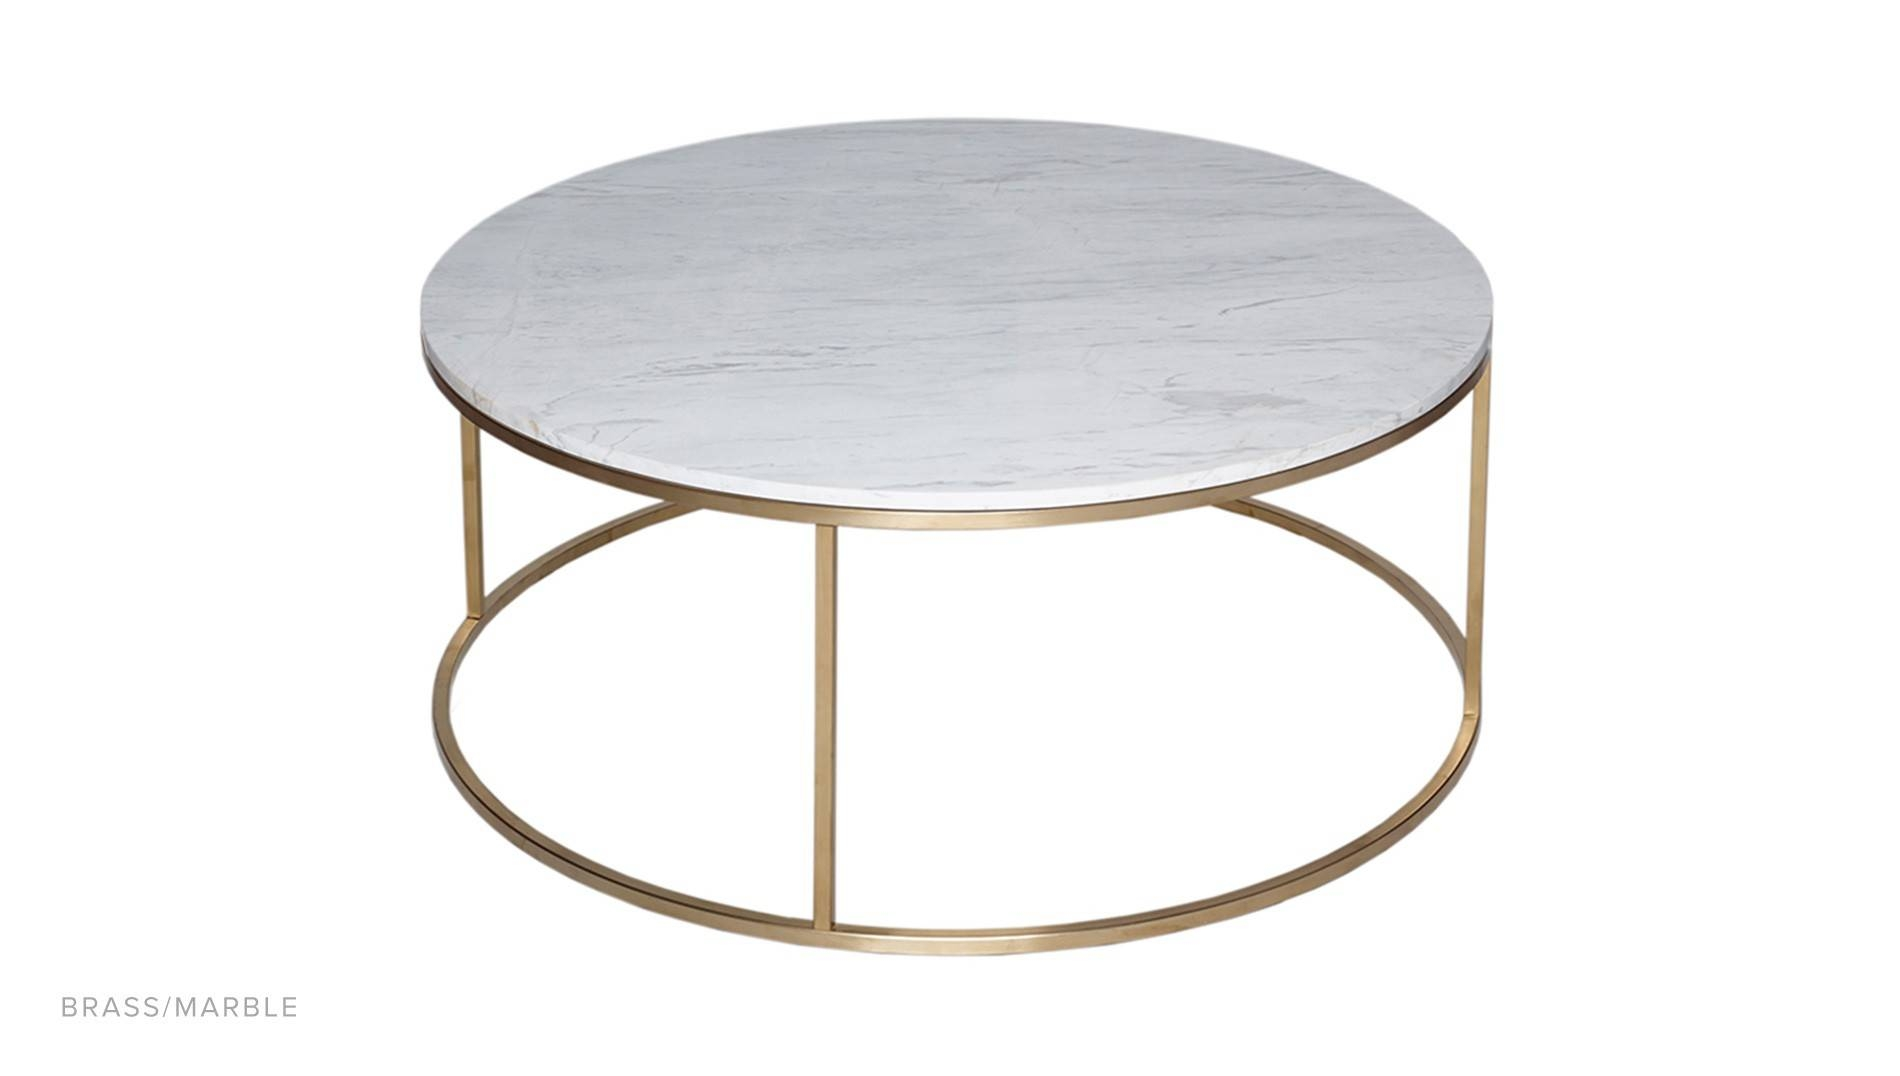 Circular Coffee Table - Luxdeco inside Marble Round Coffee Tables (Image 7 of 30)